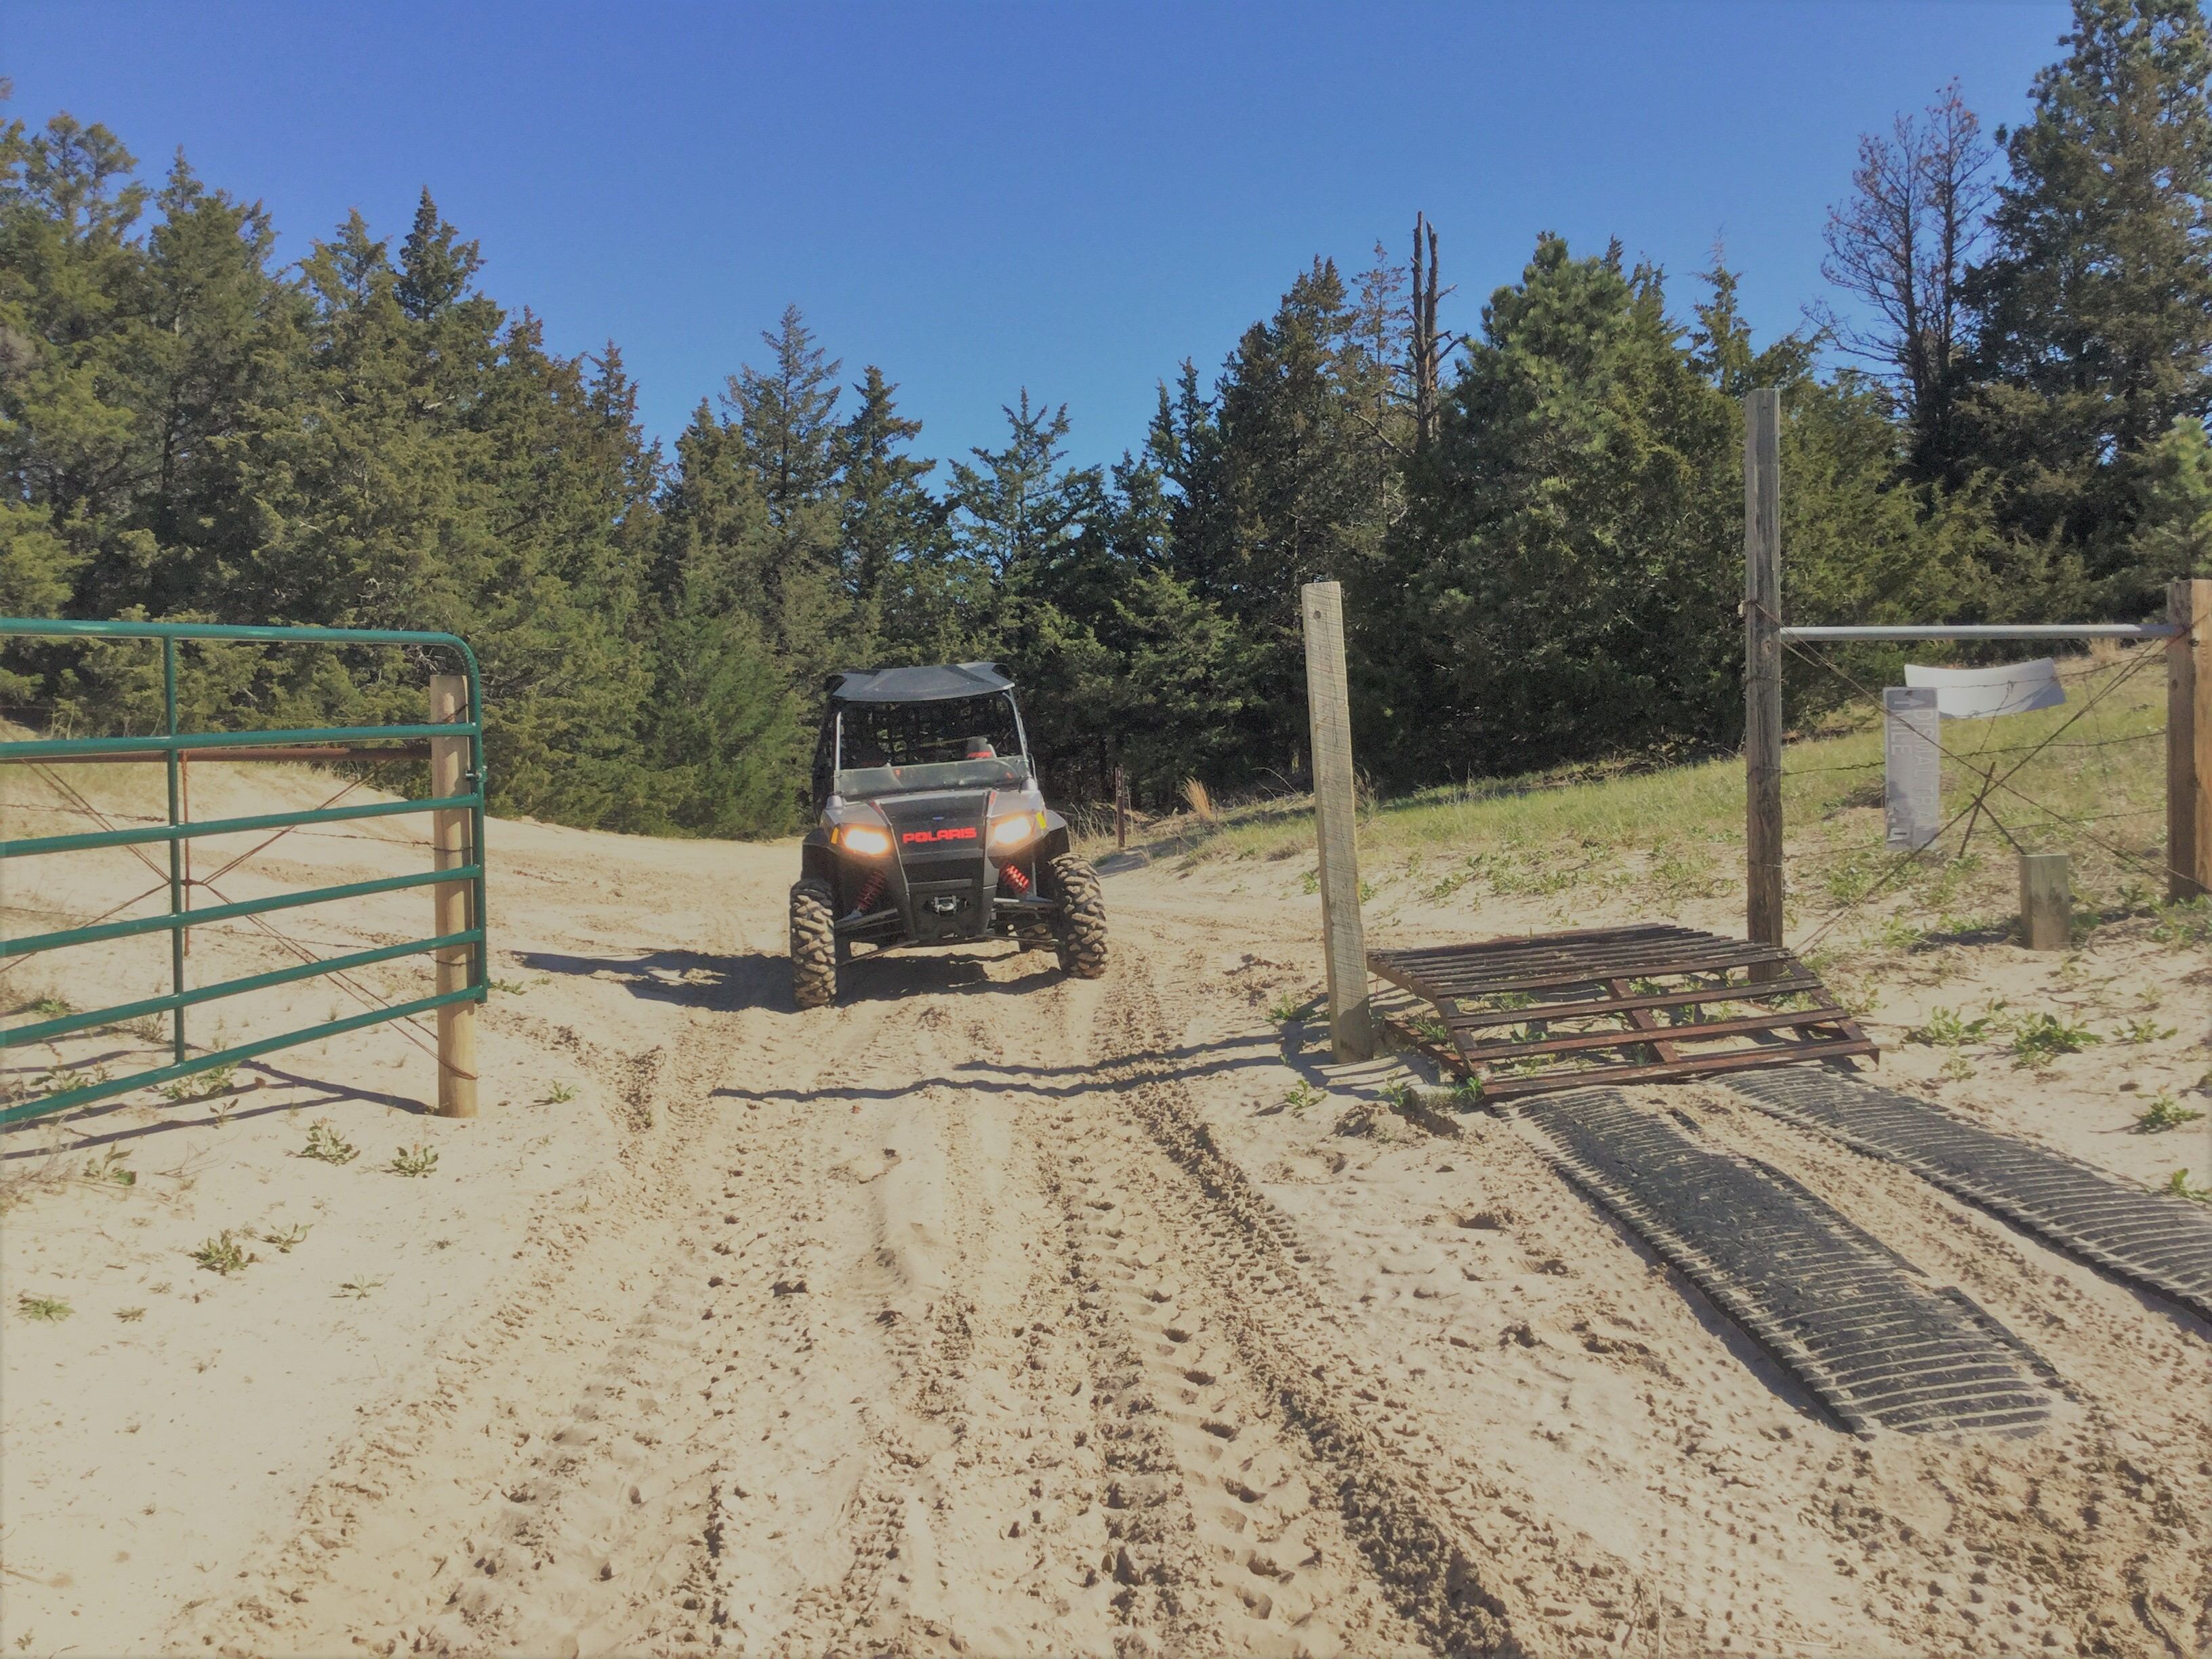 Side-by-side on Bessey OHV Trail System